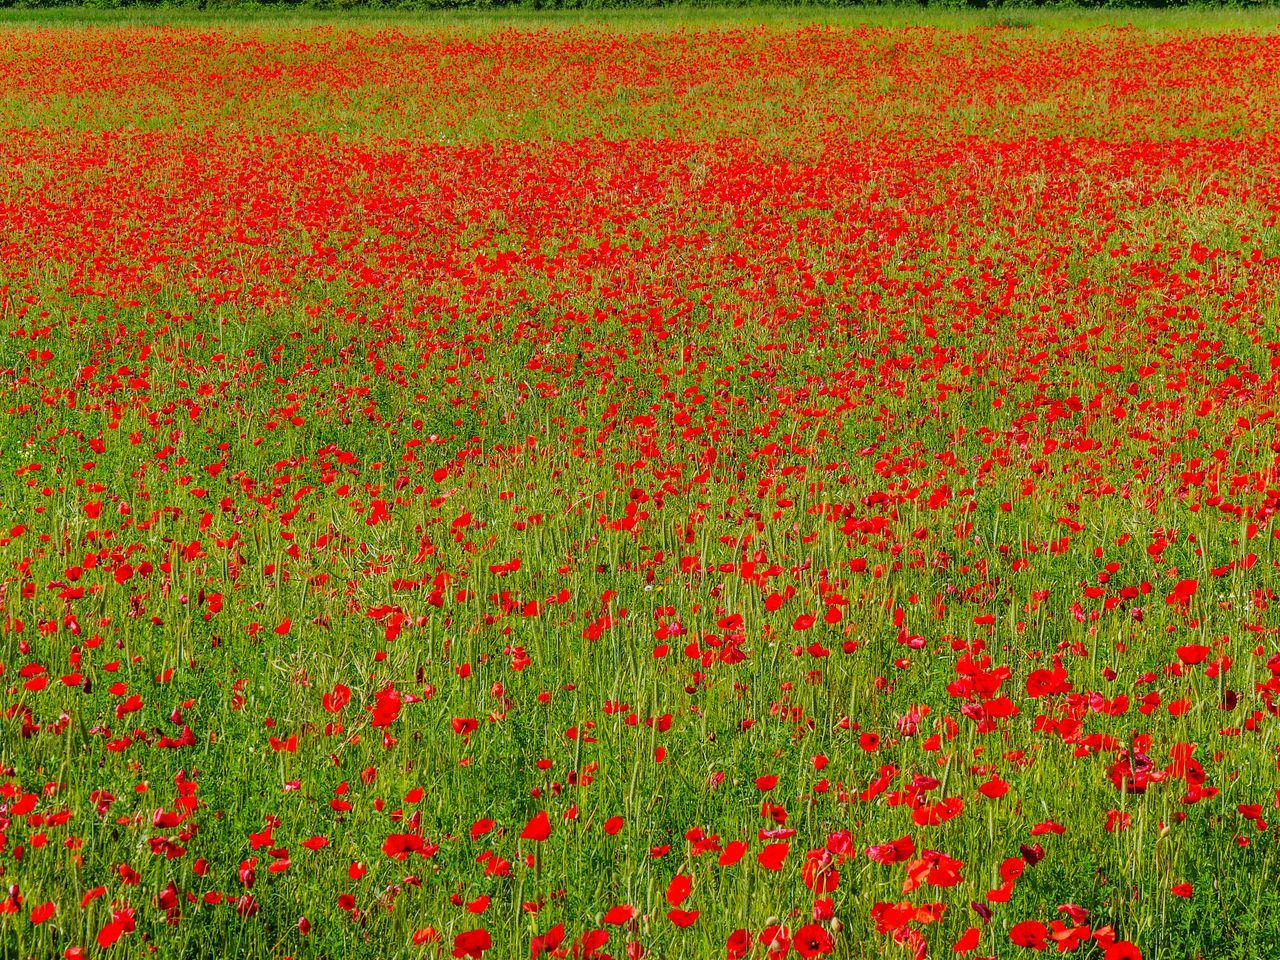 Poppies Red Poppies  Poppy Flowers Flowers Spring Spring Flowers Landscape Landscape_Collection Landscapes France Nature_collection EyeEm Nature Lover Eye4photography  Nature Naturelovers Nature Photography Beauty In Nature Outdoors Scenics Poppies In Bloom In Bloom Growth Growing Flowerporn Flower Collection